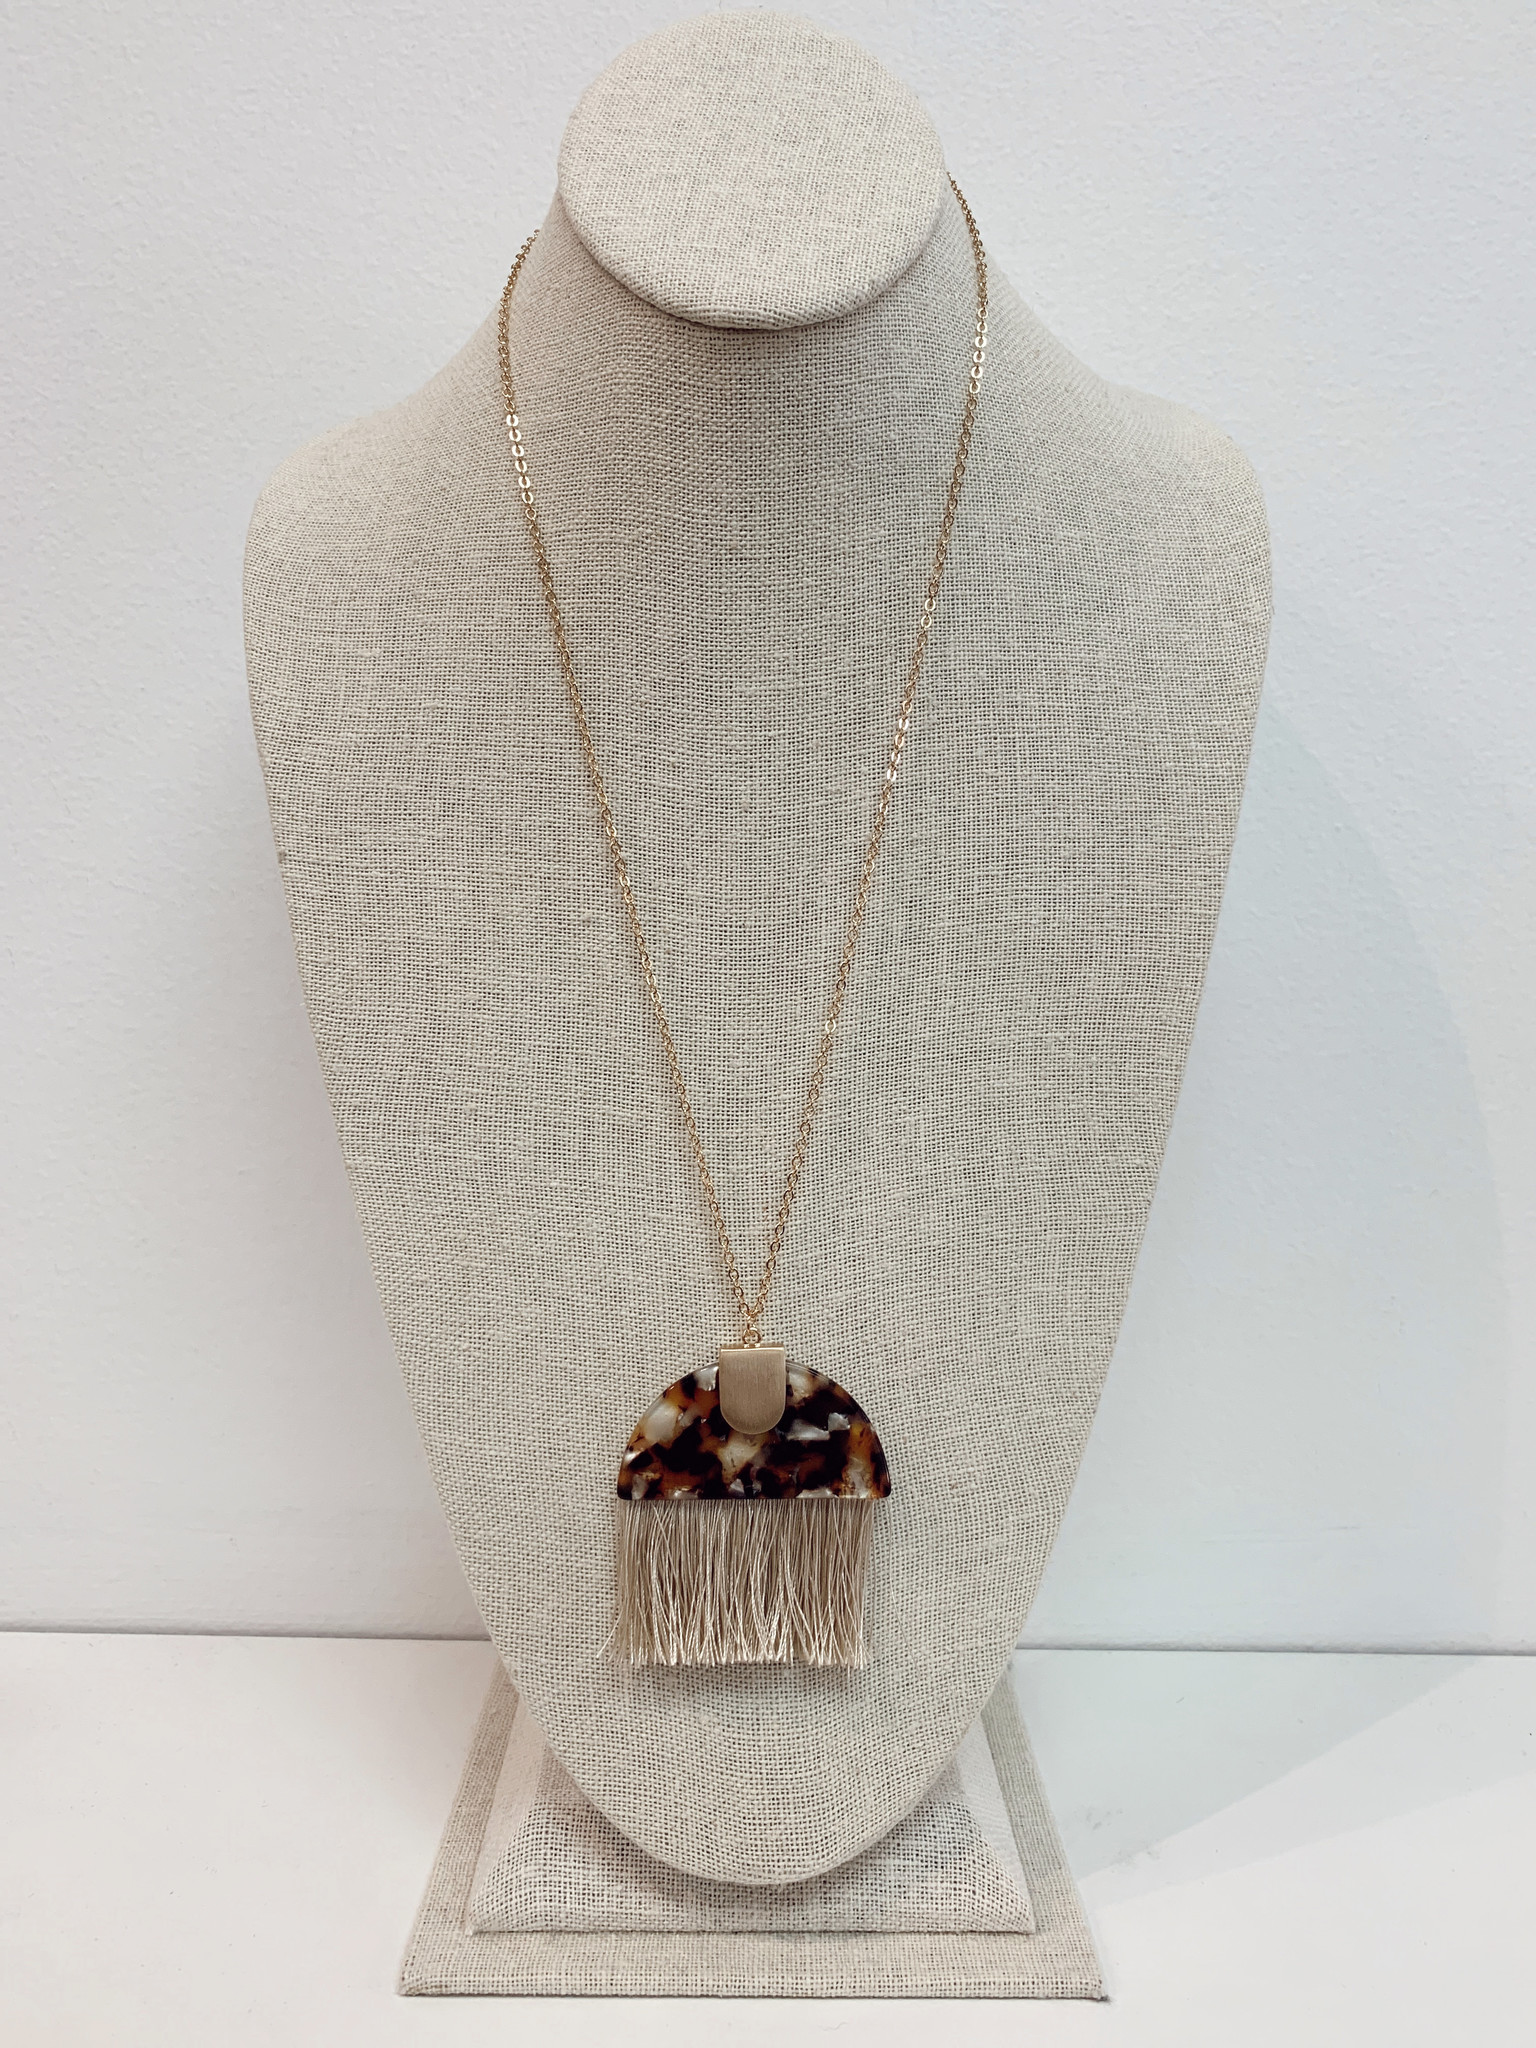 JA Half Circle Tassle Necklace 0167